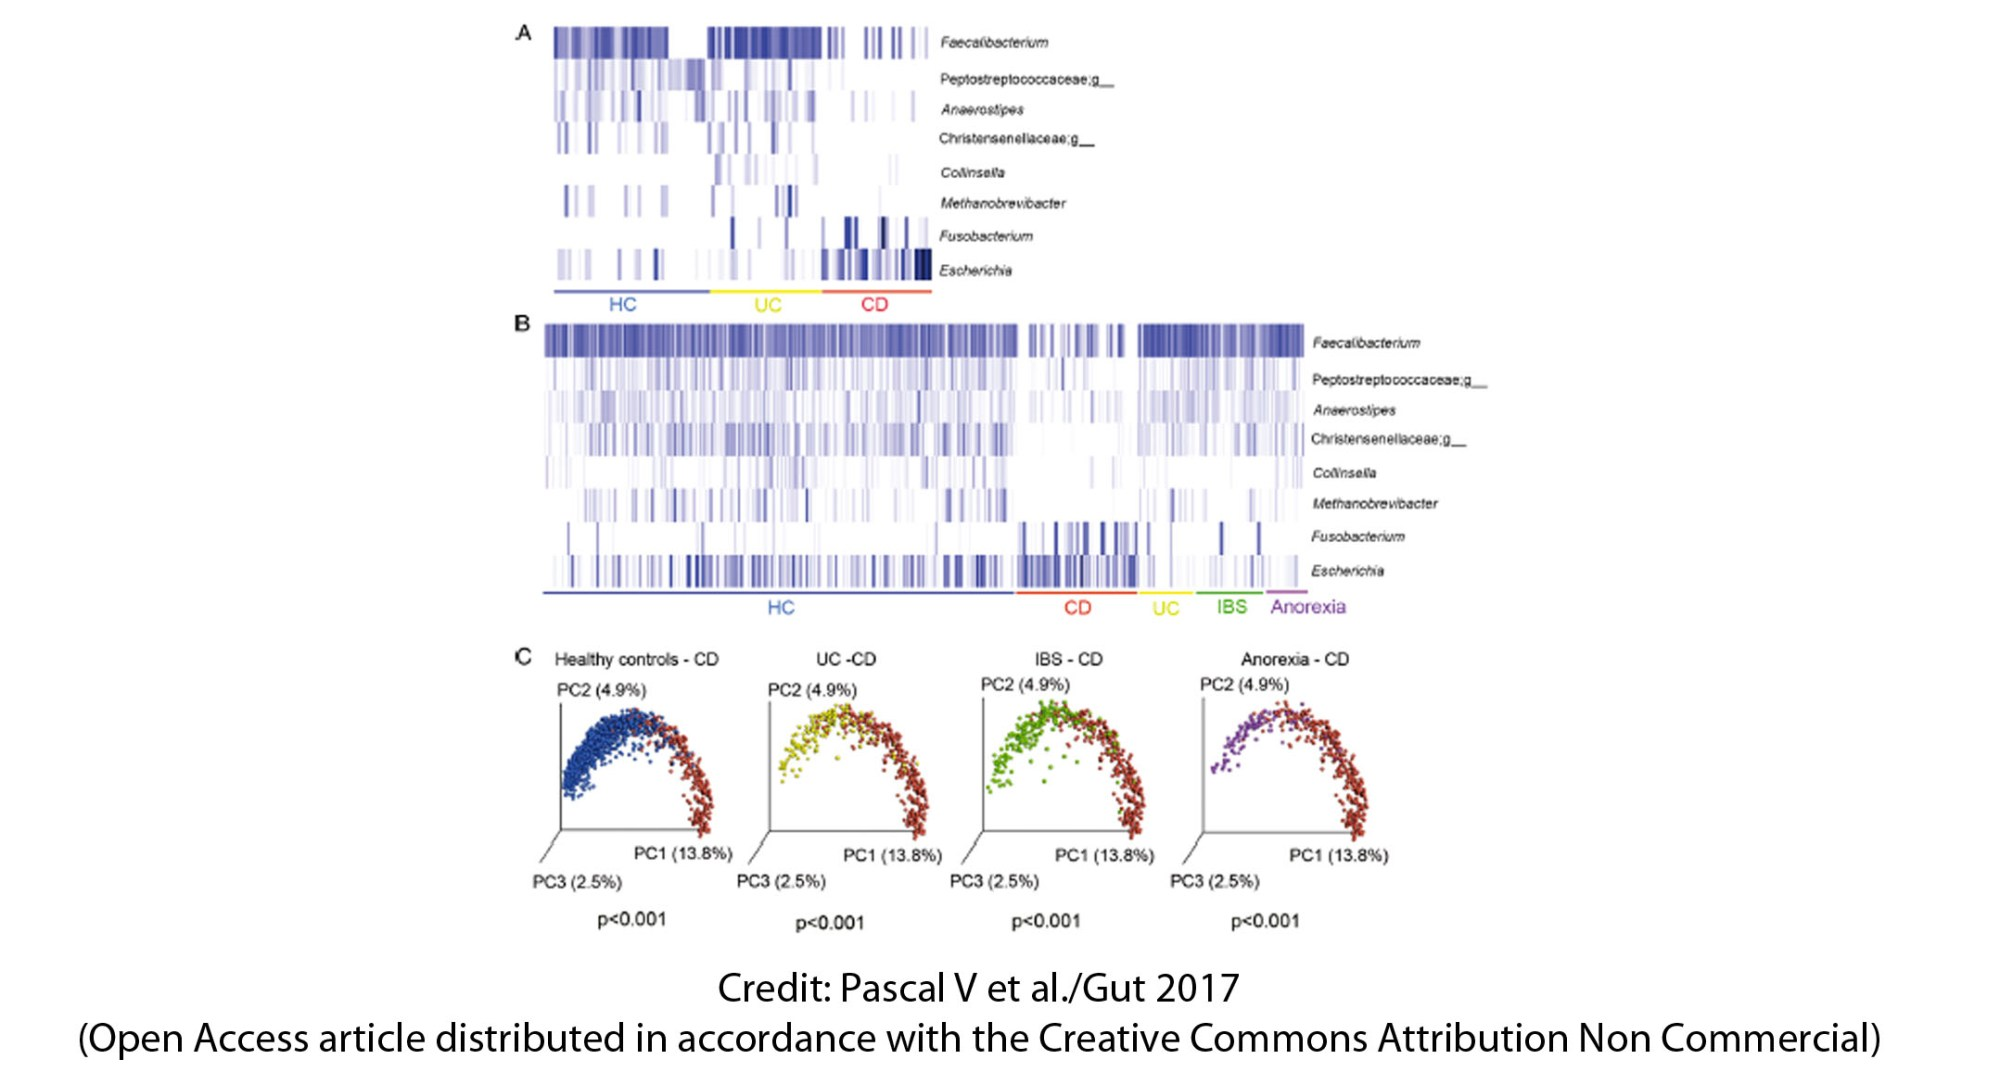 hight resolution of gut microbiome in crohn s disease cd and ulcerative colitis uc the two main forms of inflammatory bowel disease ibd has been previously shown to